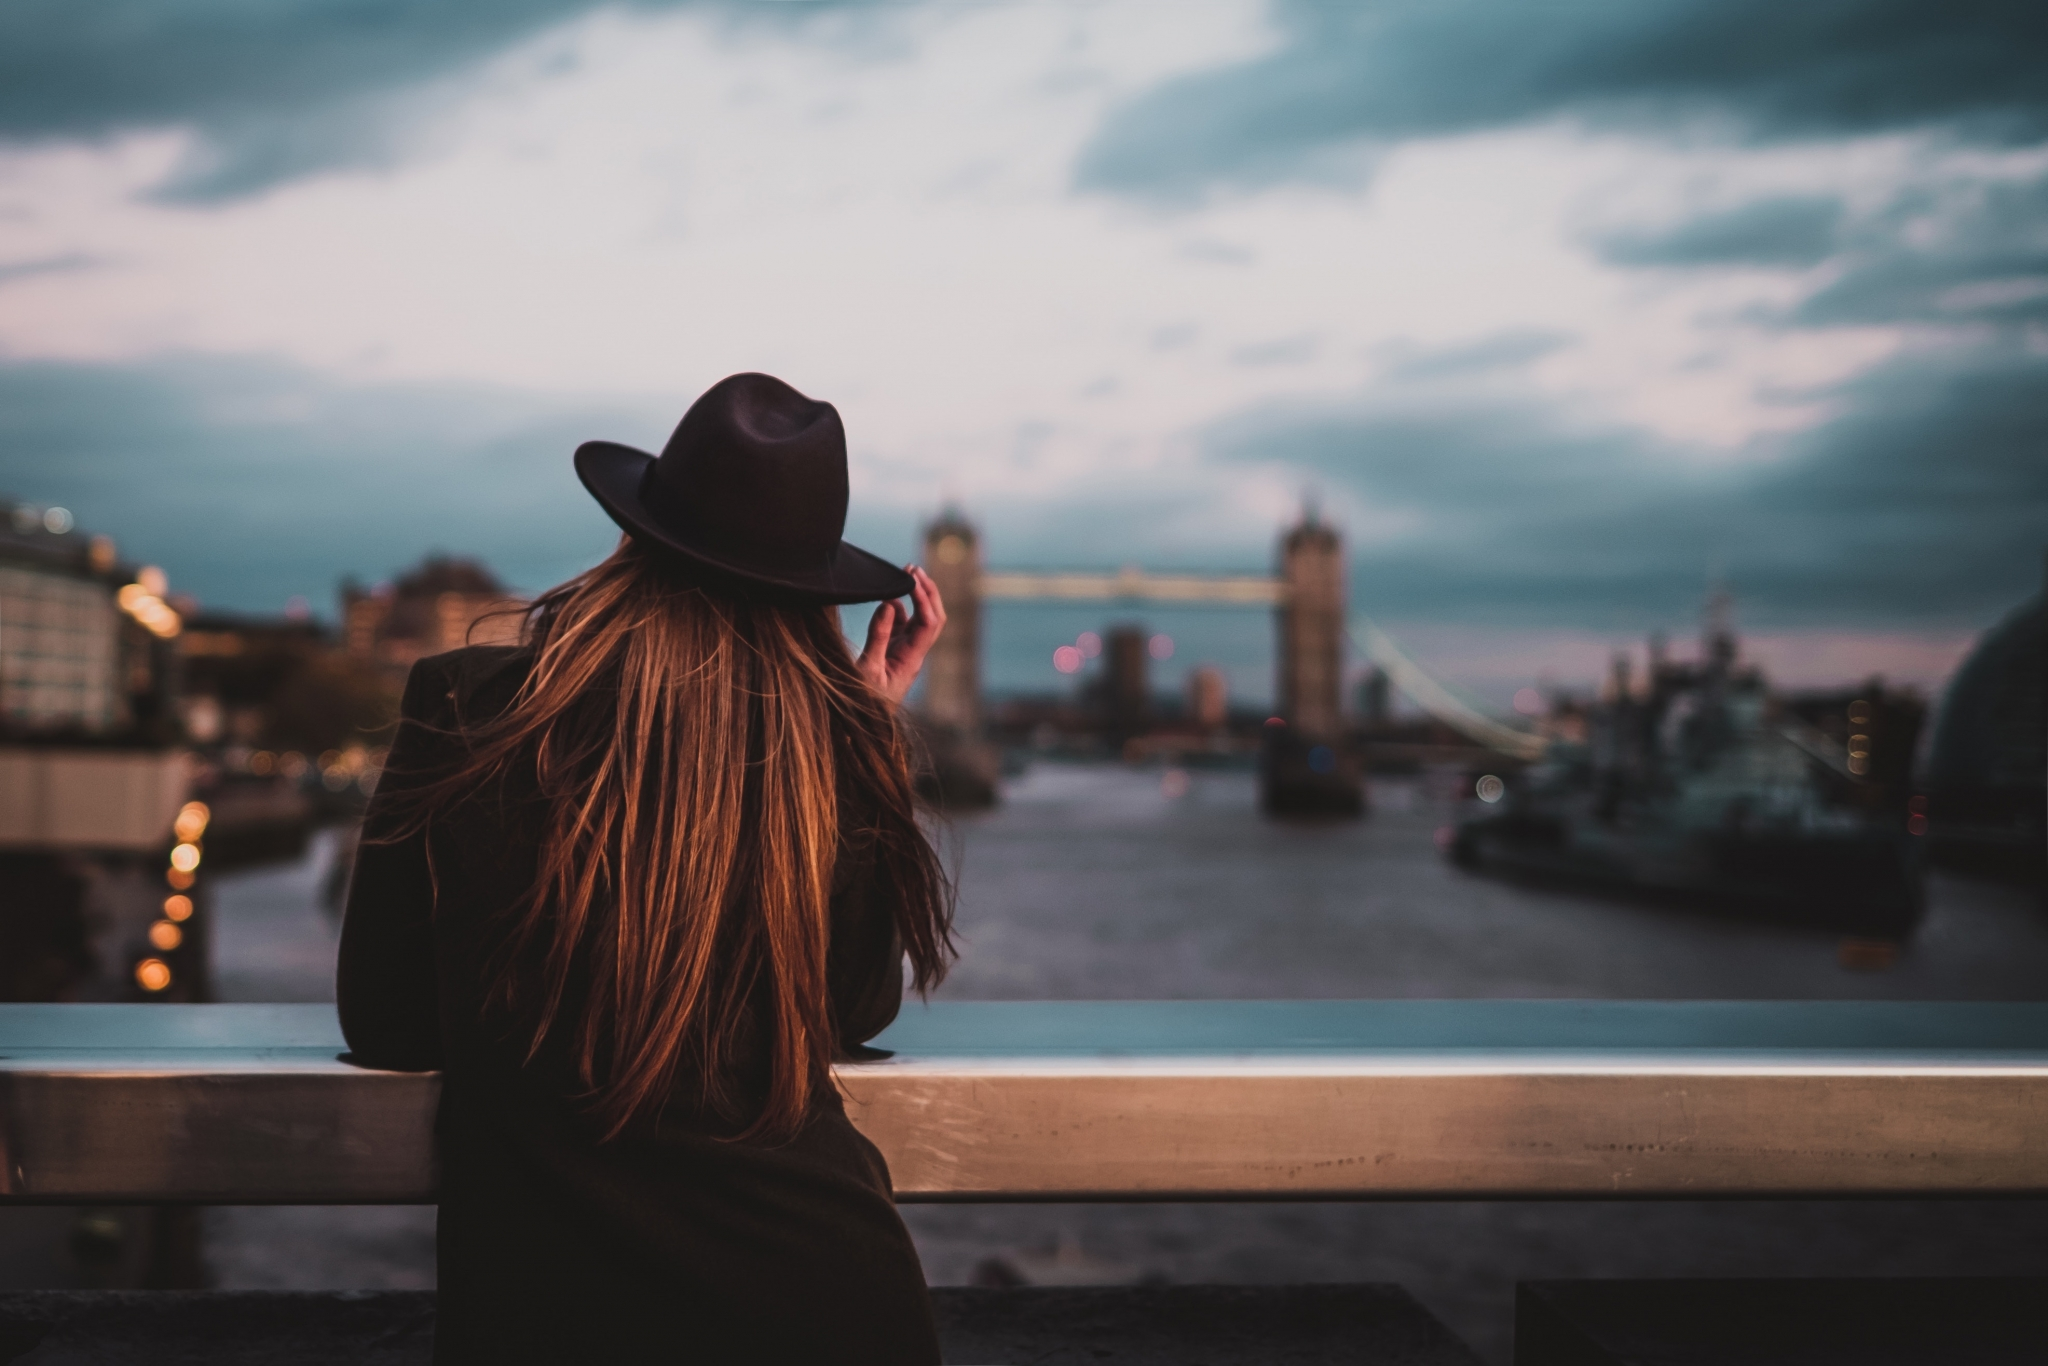 woman in london luigi manga 457597 unsplash